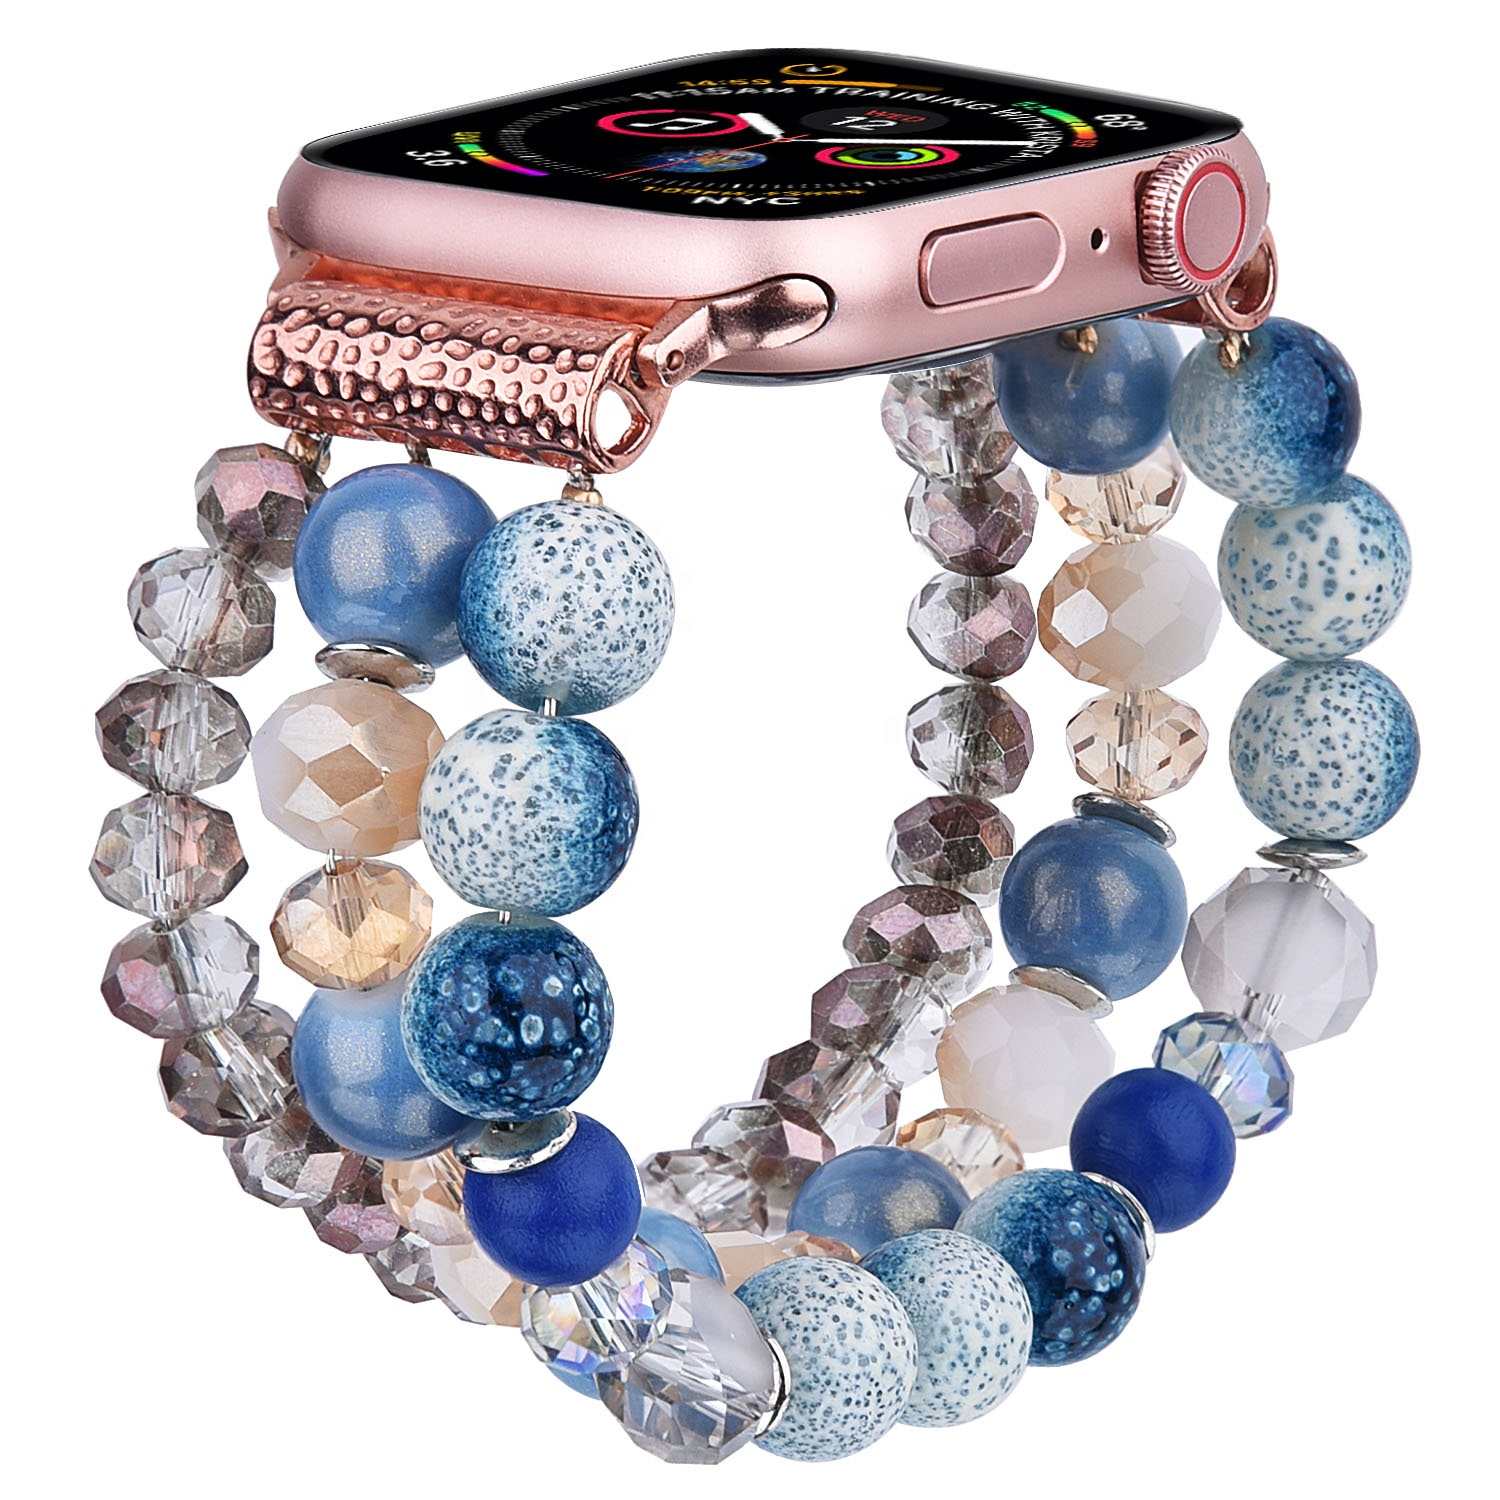 Fashion Ladies Pearl Beads Watch Straps for Apple Watch Women Designer Handmade Elastic Luxury Charm Pearl Strap for iWatch 6